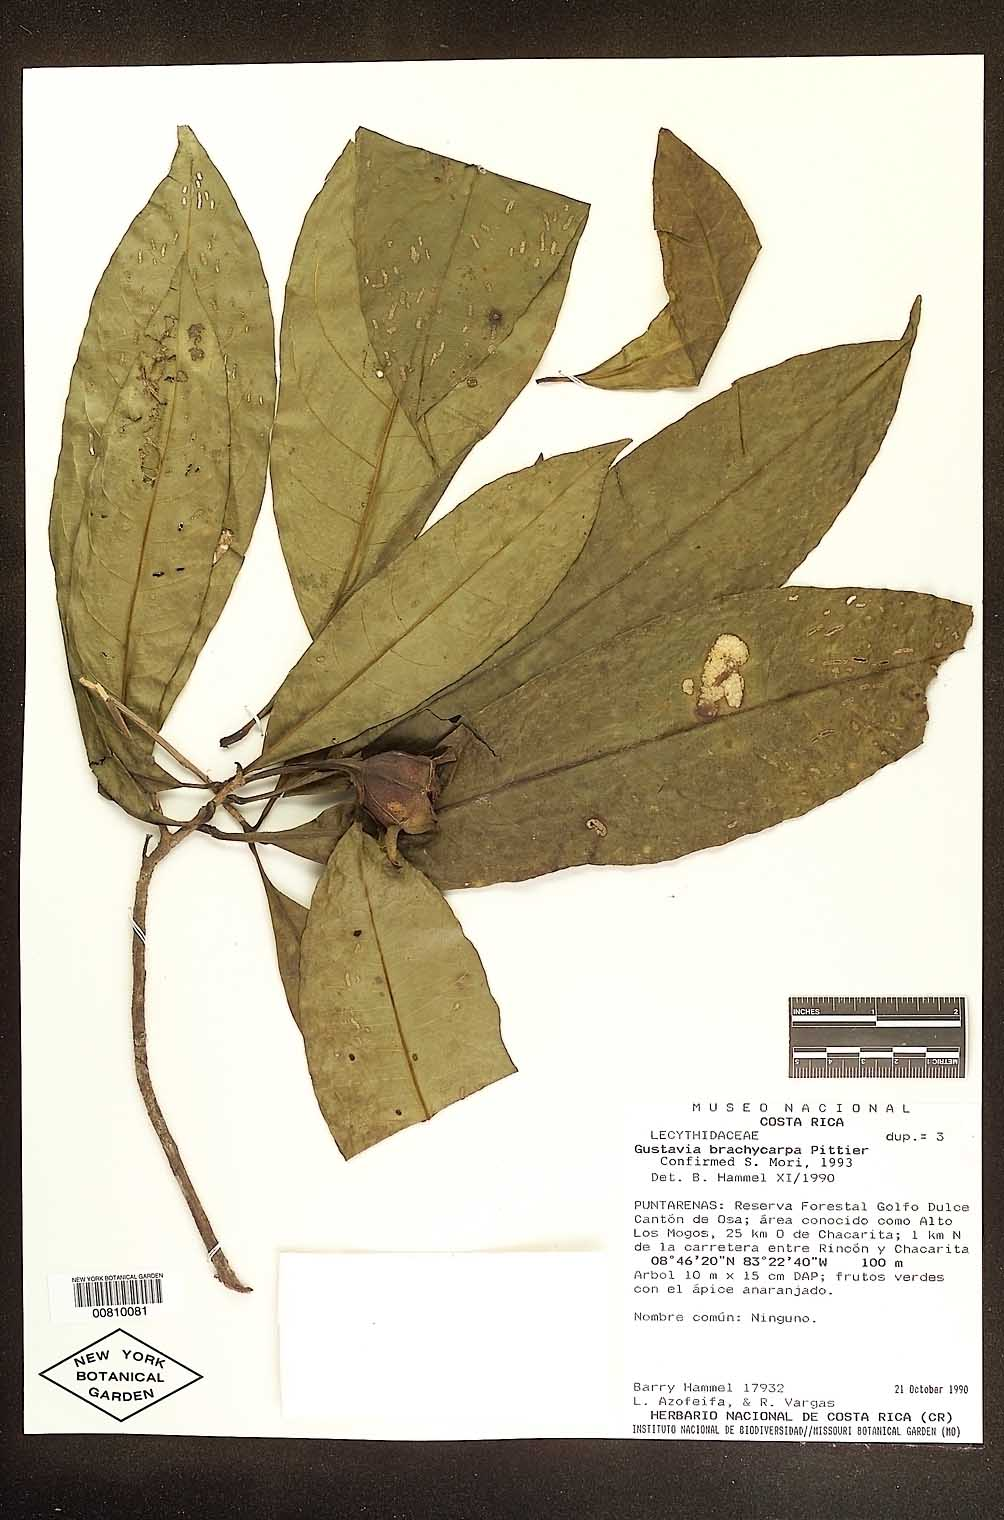 Herbarium sheet of Gustavia brachycarpa at NY. Photo by NY.